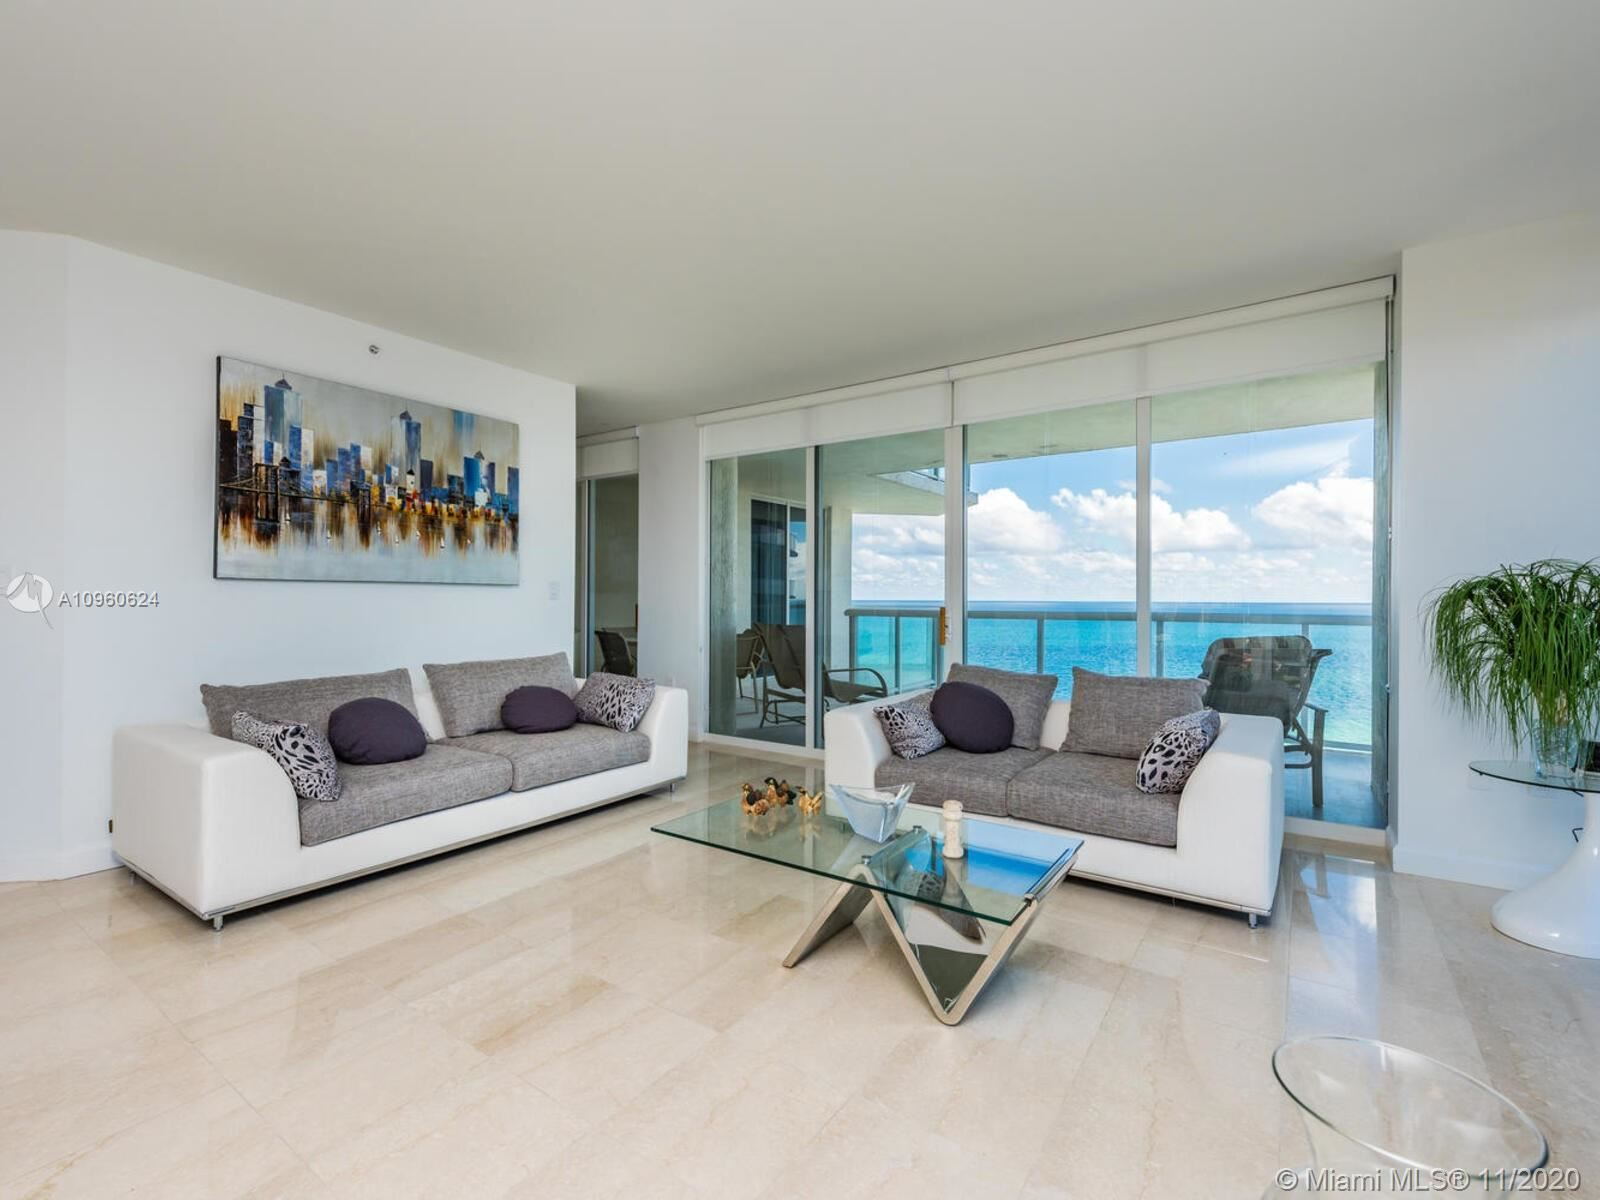 18671 Collins Ave #1903, Sunny Isles, FL 33160 - #: A10960624